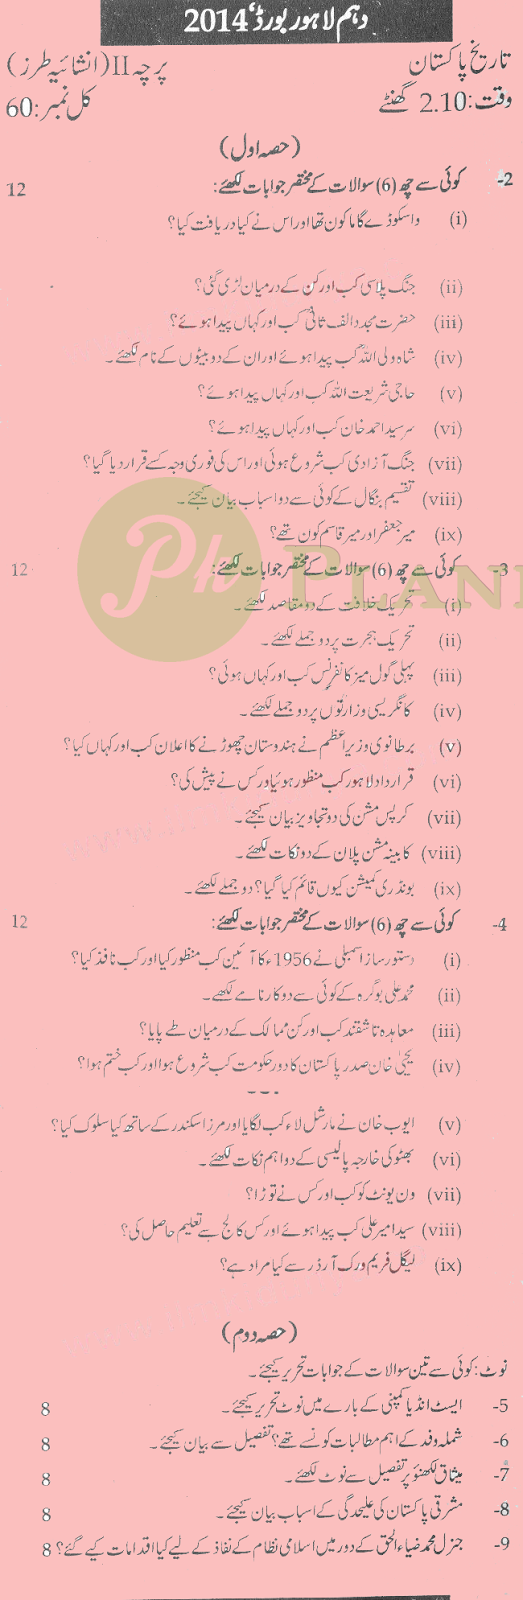 Past Papers 10th Class Lahore Board History of Pakistan 2014